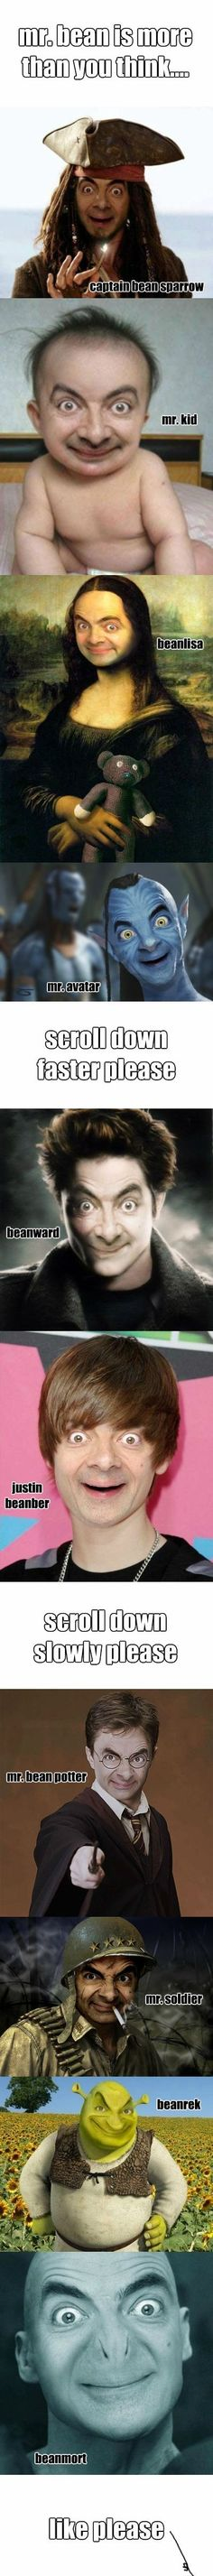 Mr. Bean... This is hilarious, i think i peed a little